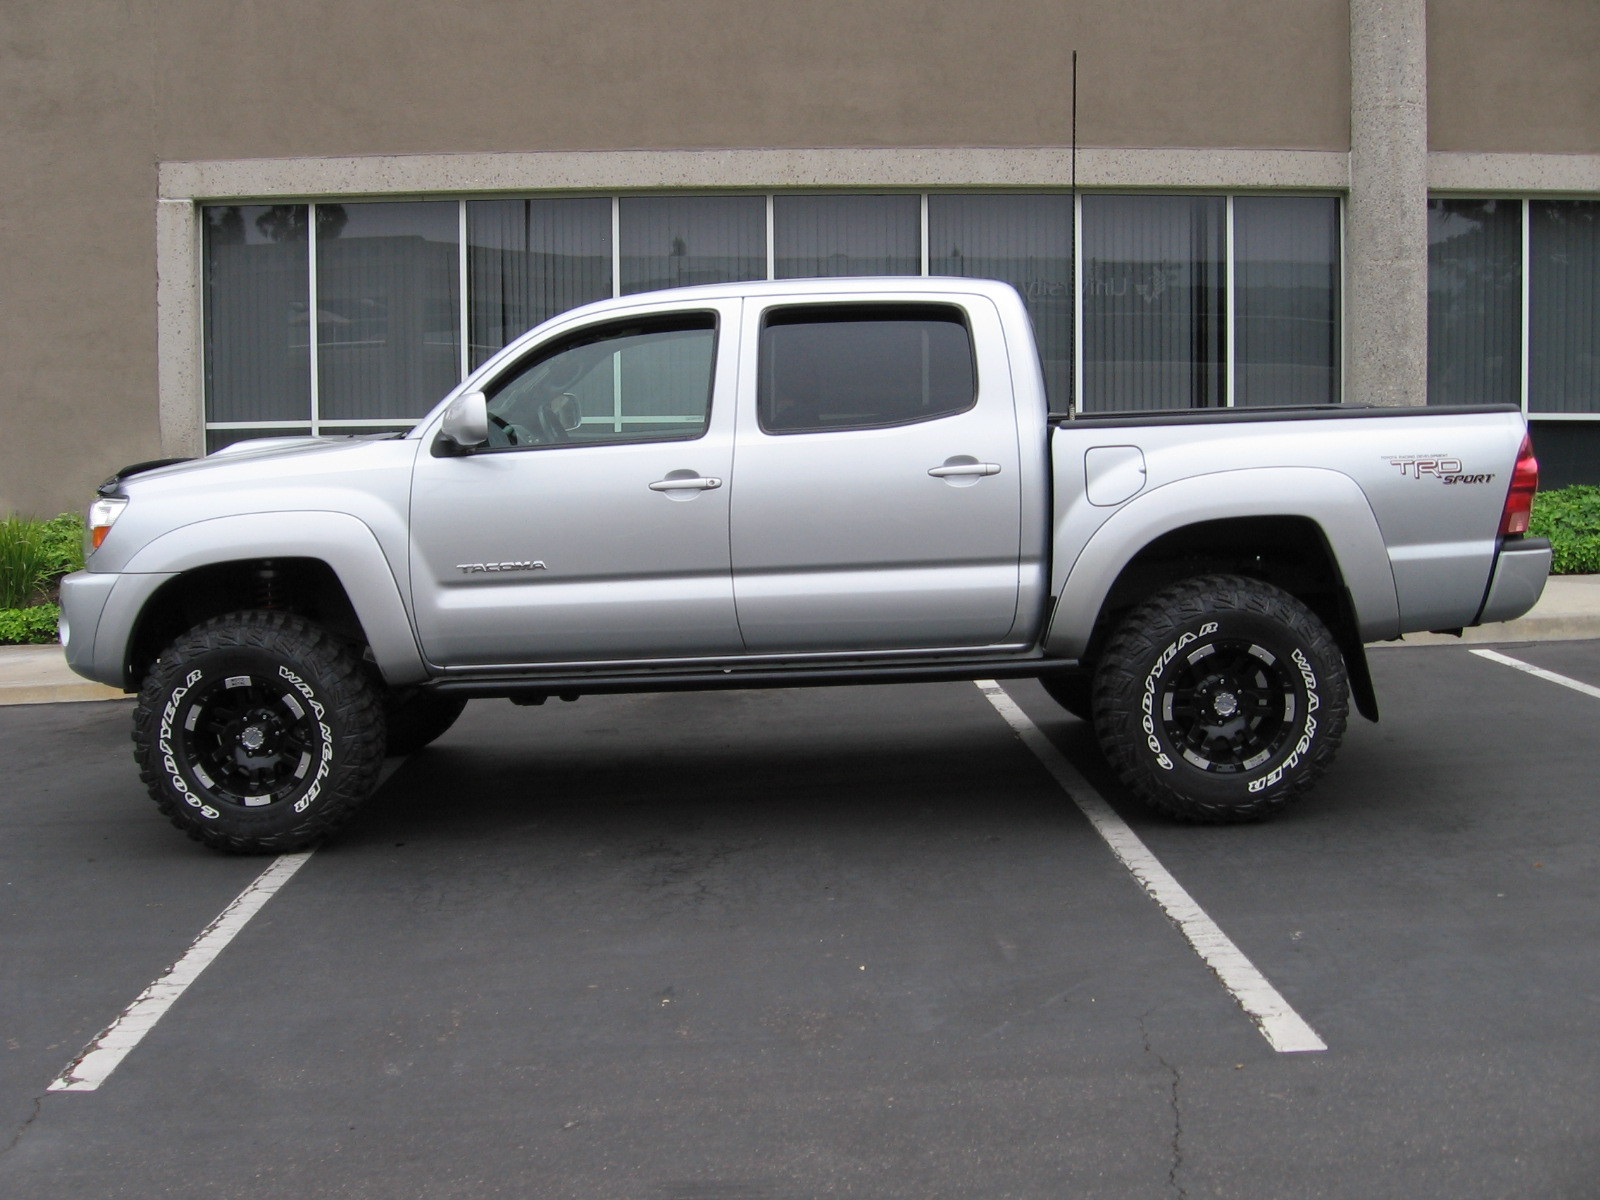 4x4TRD 2007 Toyota Tacoma Double Cab Specs, Photos ...